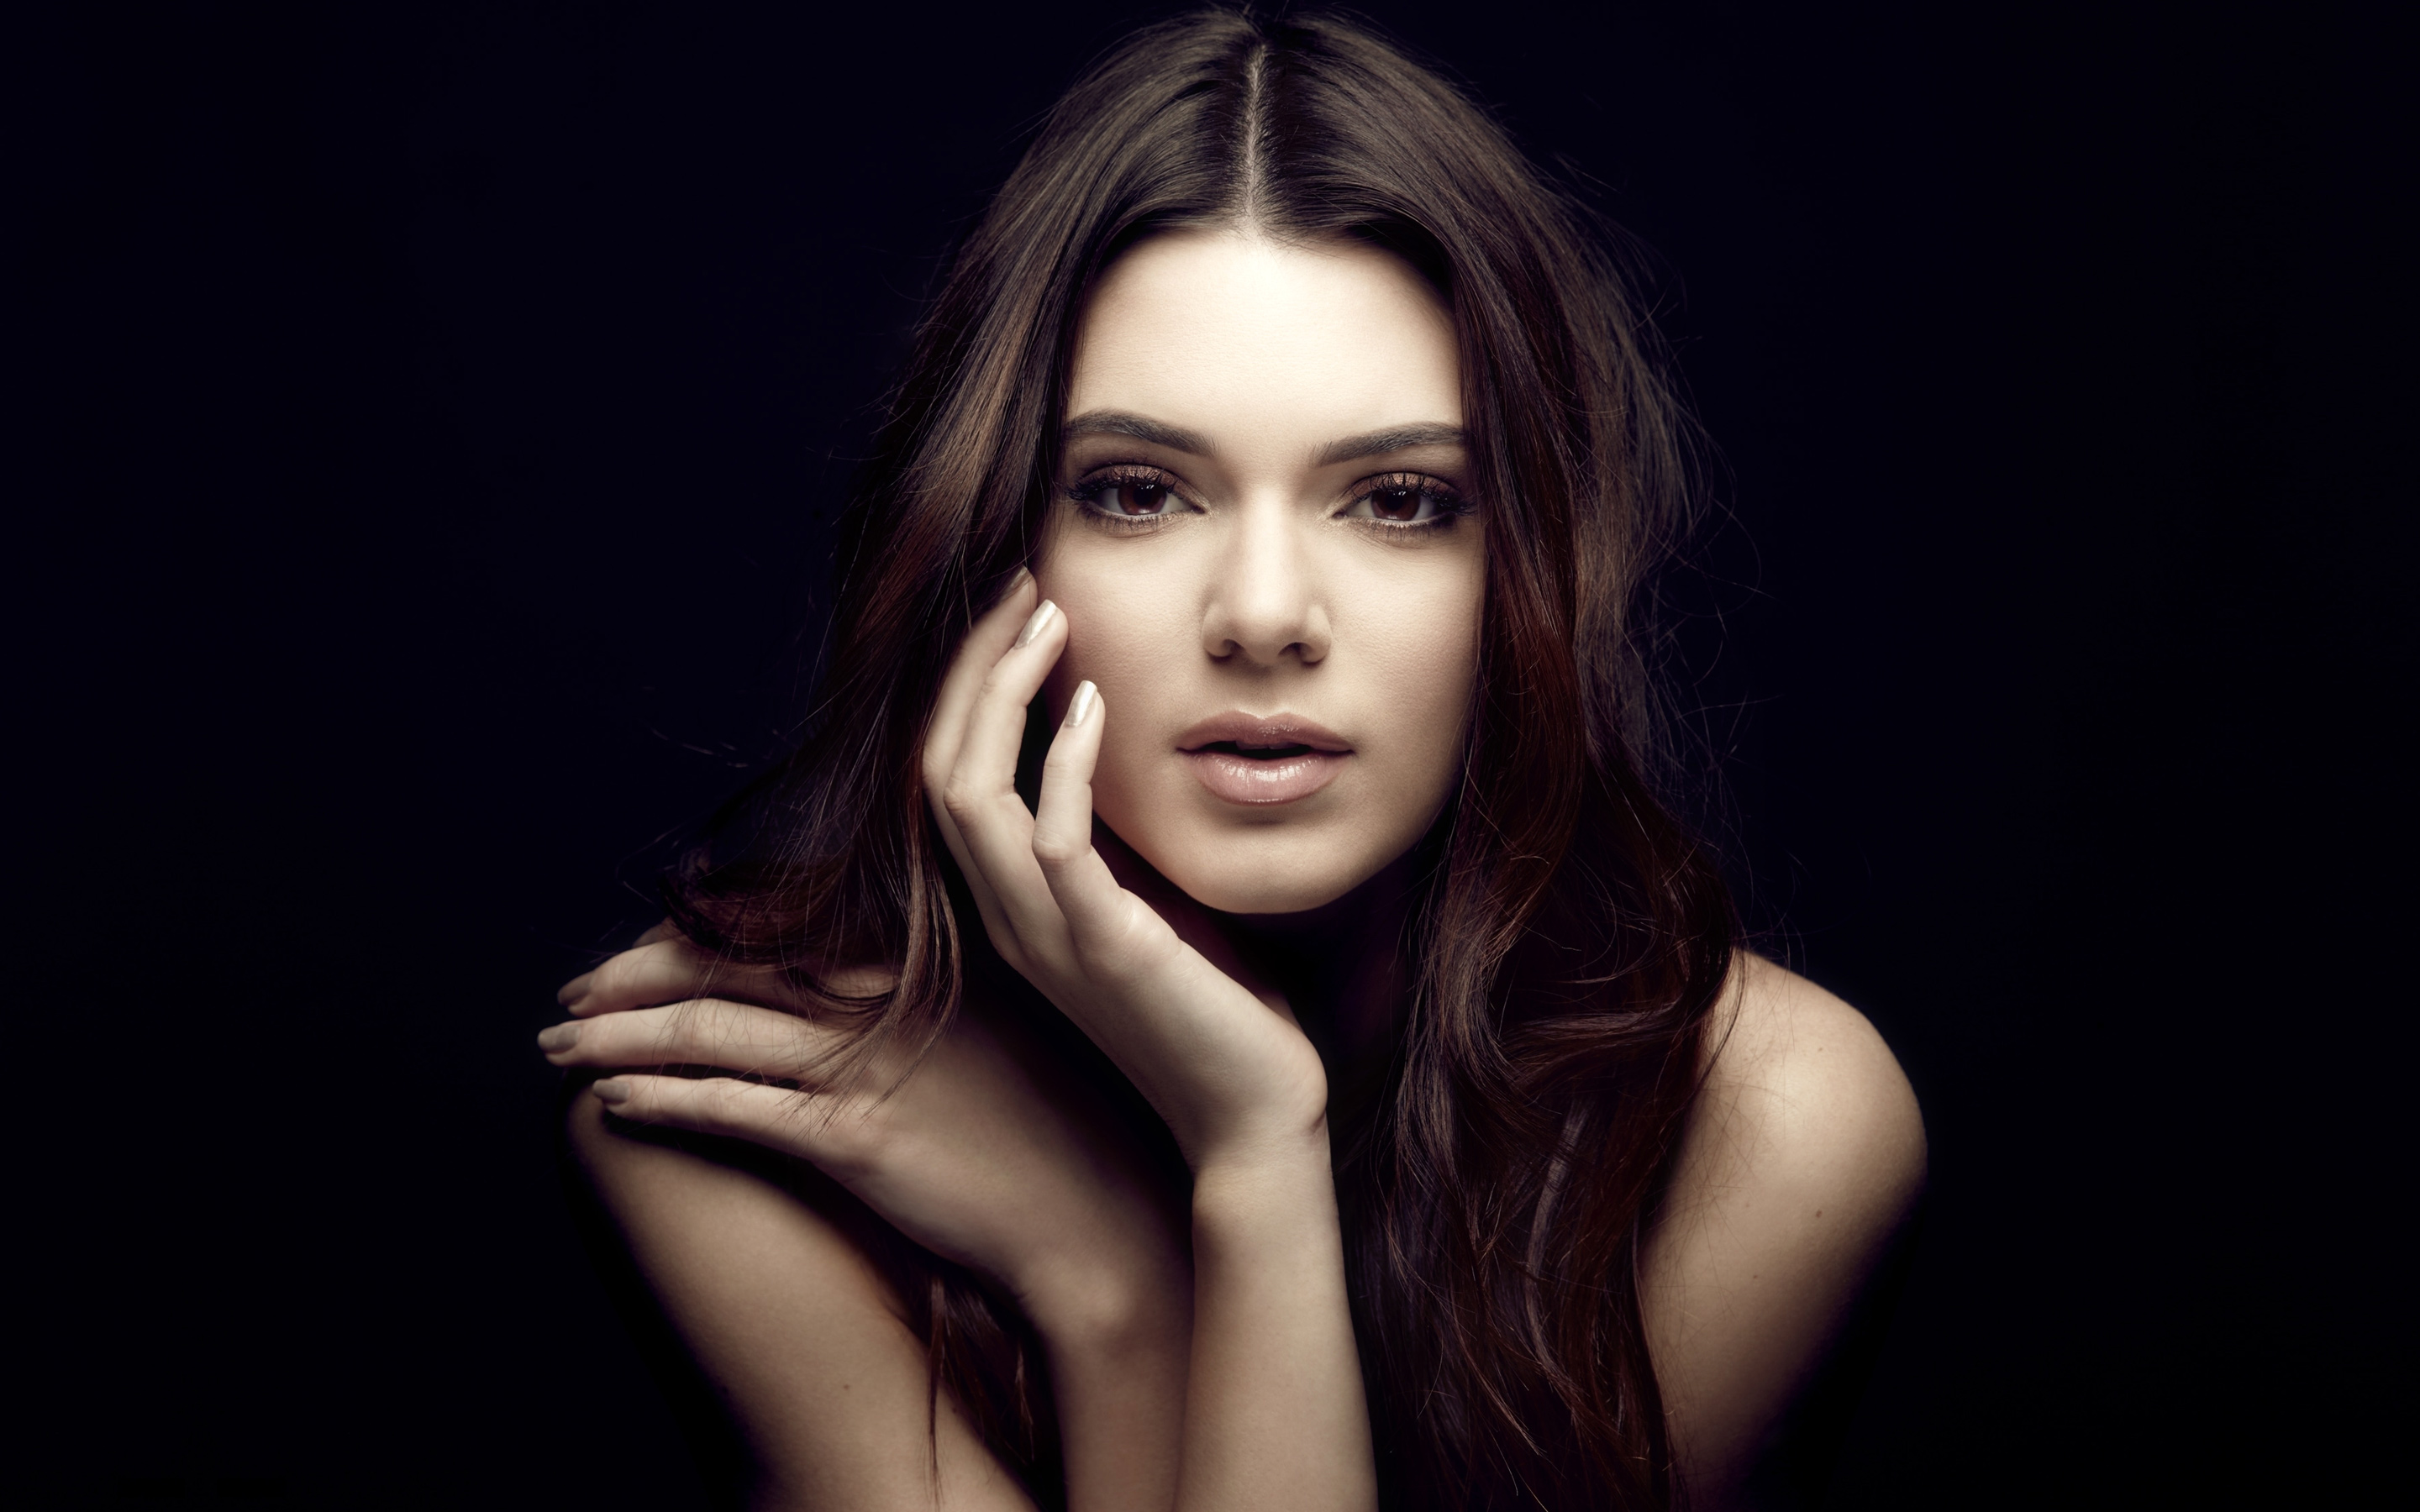 Fashion Model Wallpapers   Top Fashion Model Backgrounds 2880x1800